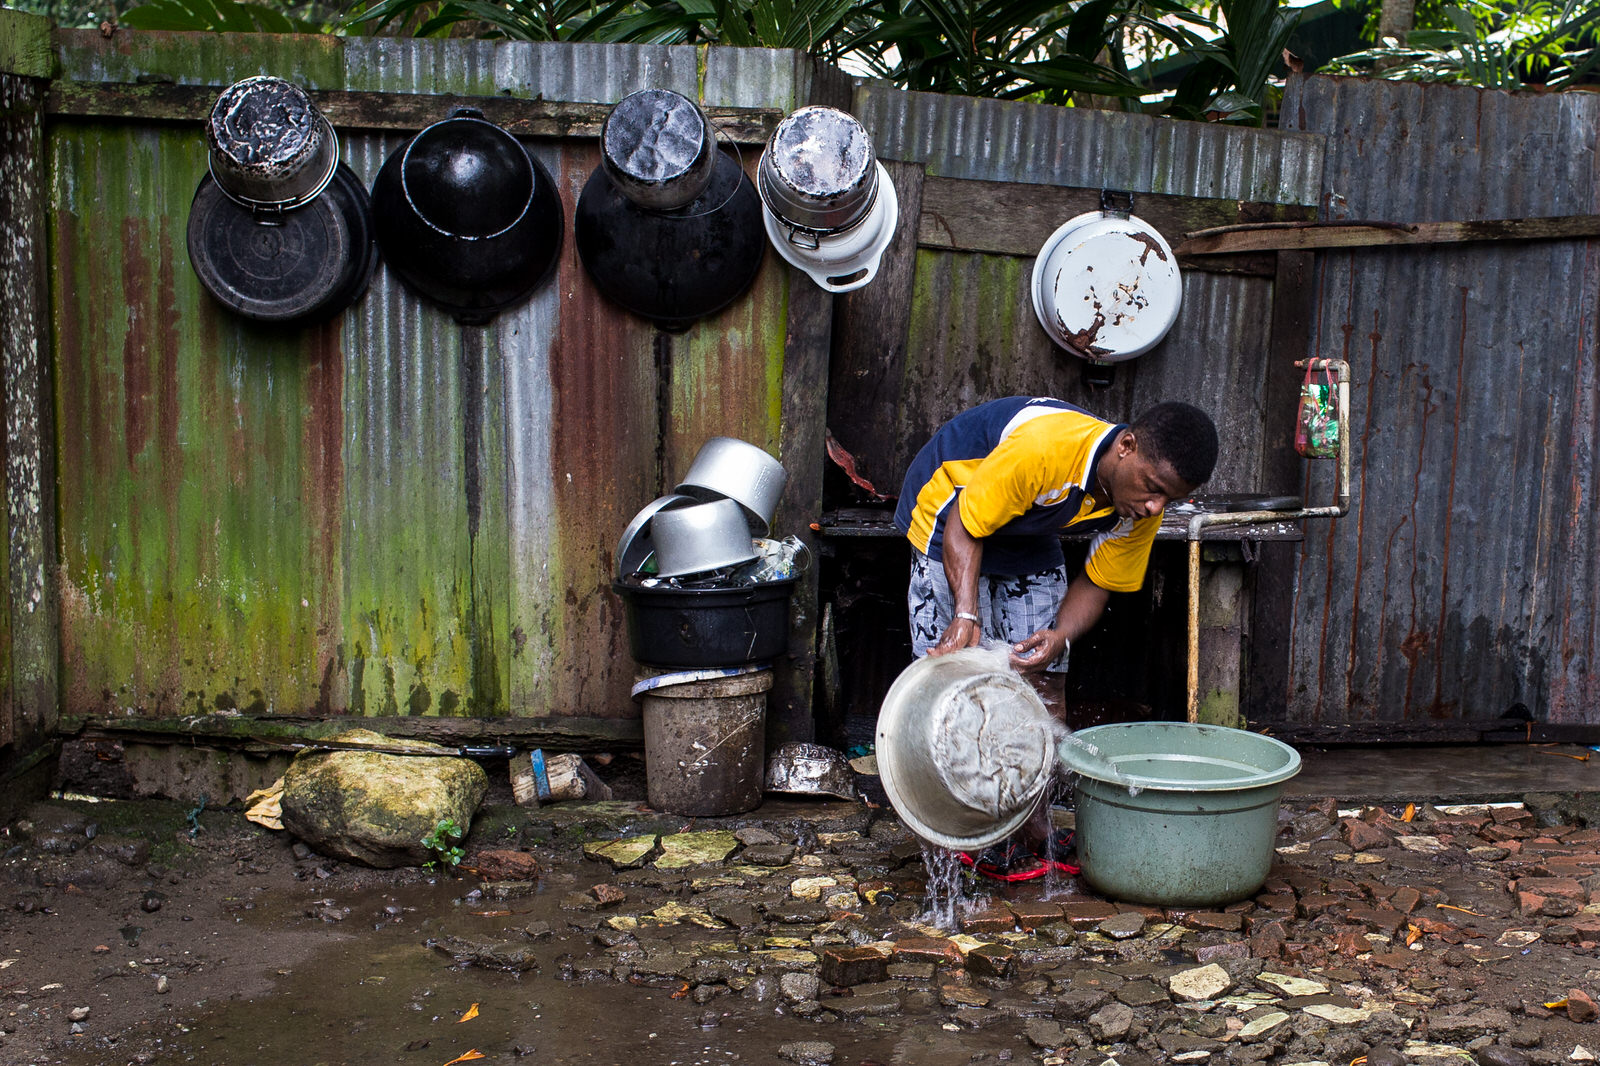 Washing the dishes in the morning, Yosua is in charge of most of the household chores.